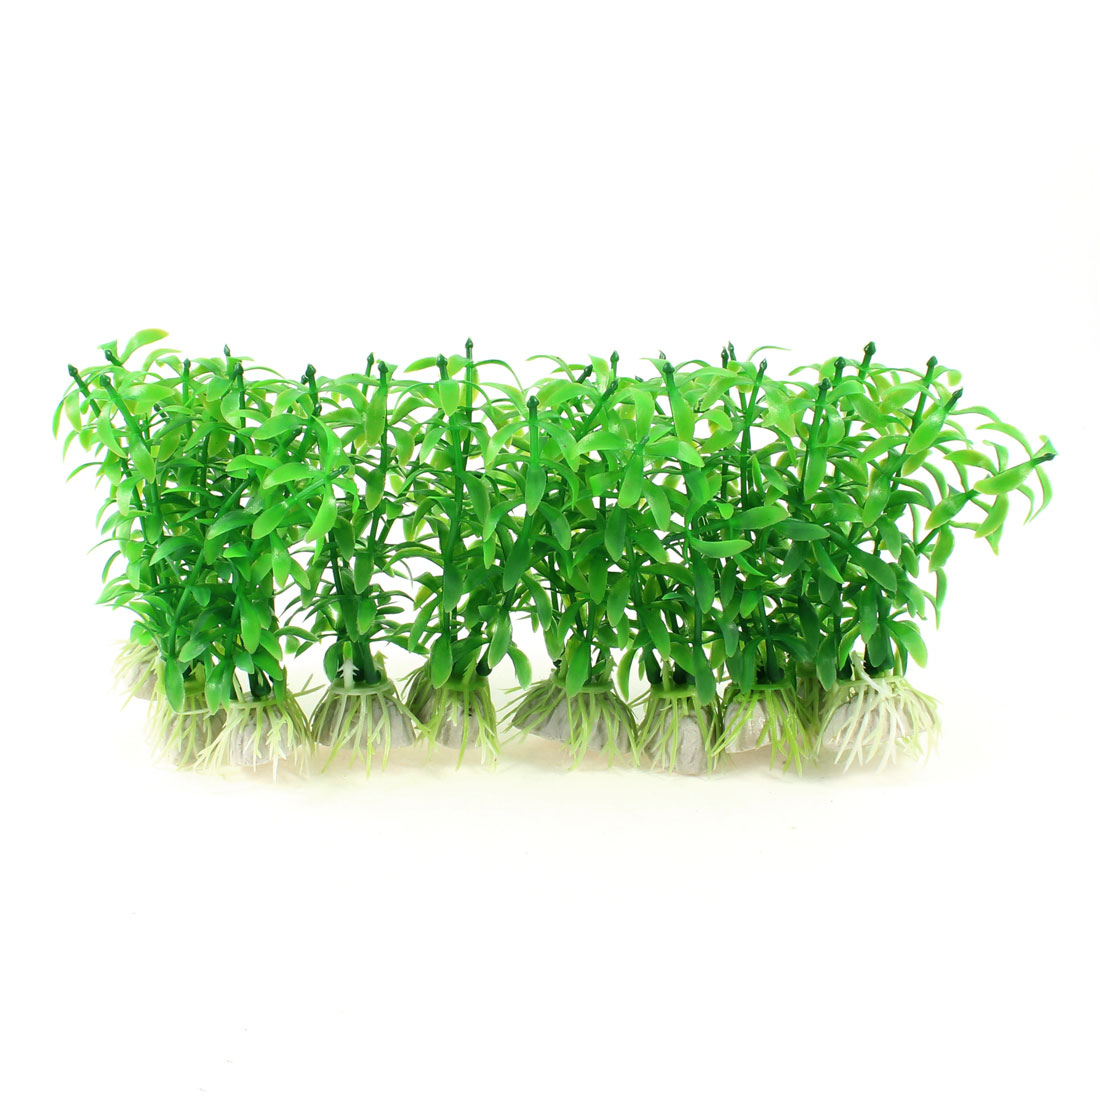 10 Pcs Fish Tank Aquascaping Decor Ceramic Base Plastic Water Plant Green